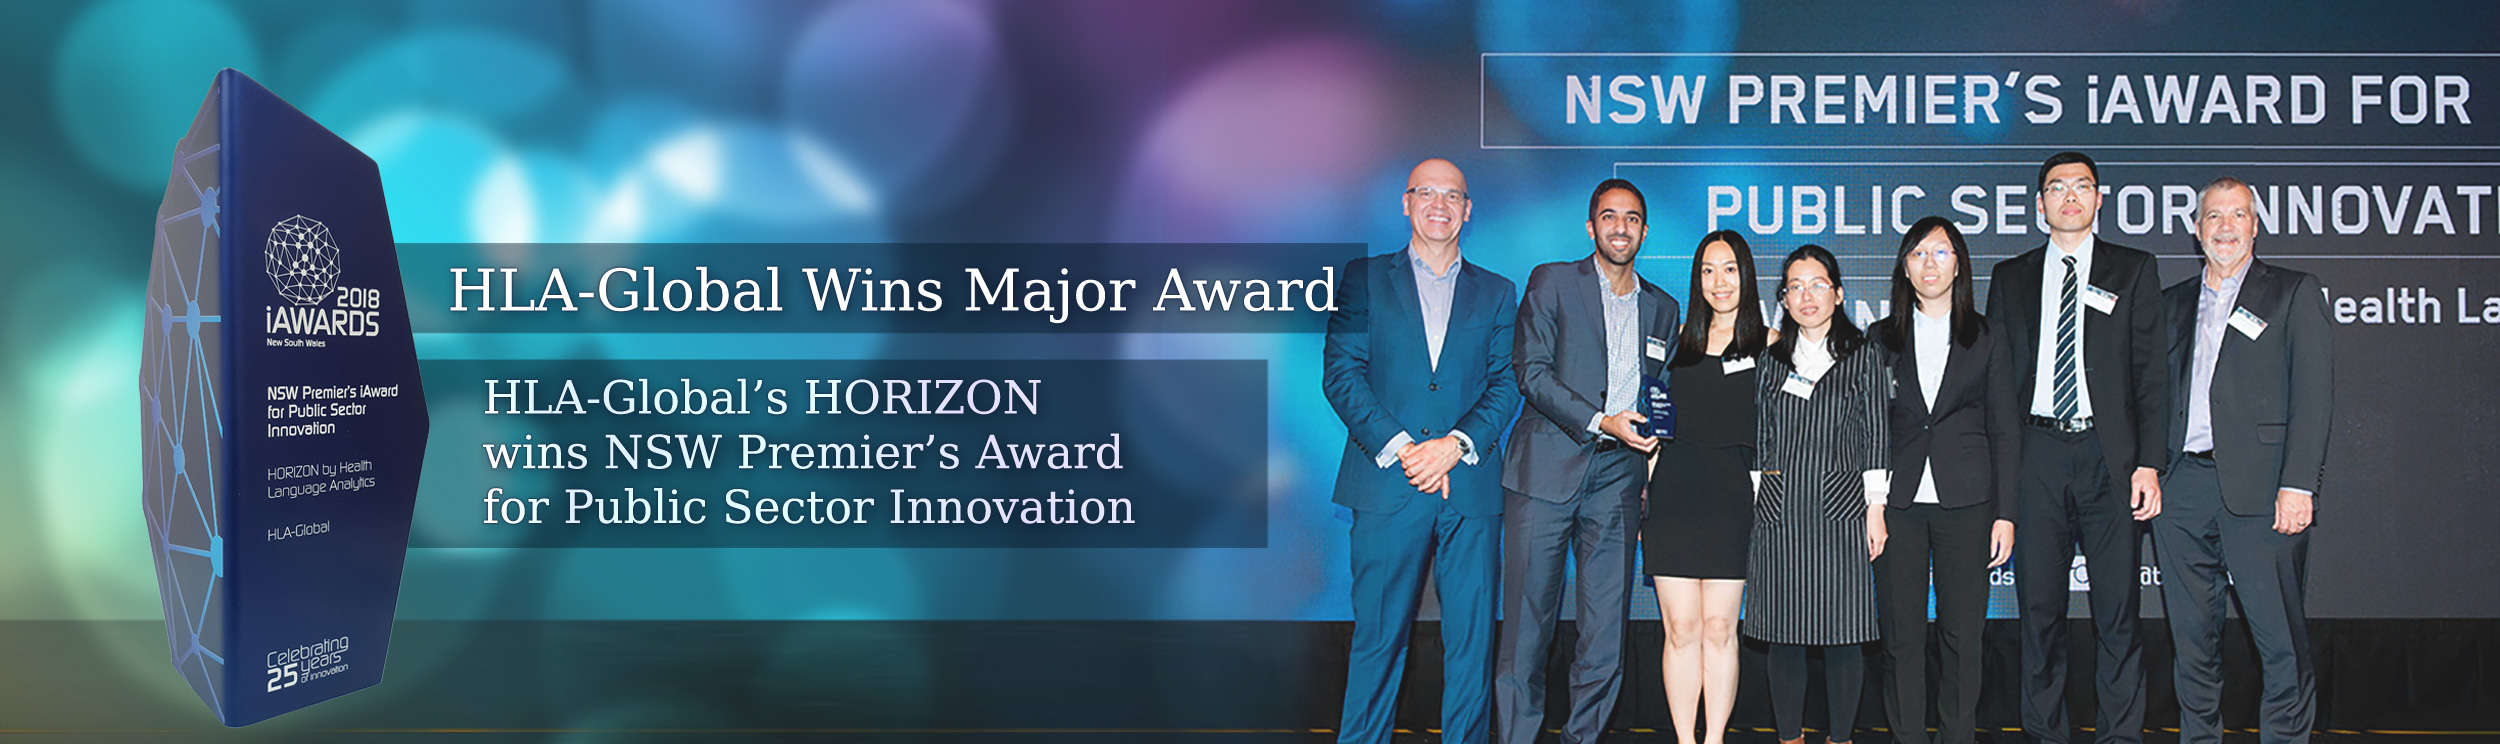 HLA-Global's HORIZON wins NSW Premier's Award for Public Sector Innovation